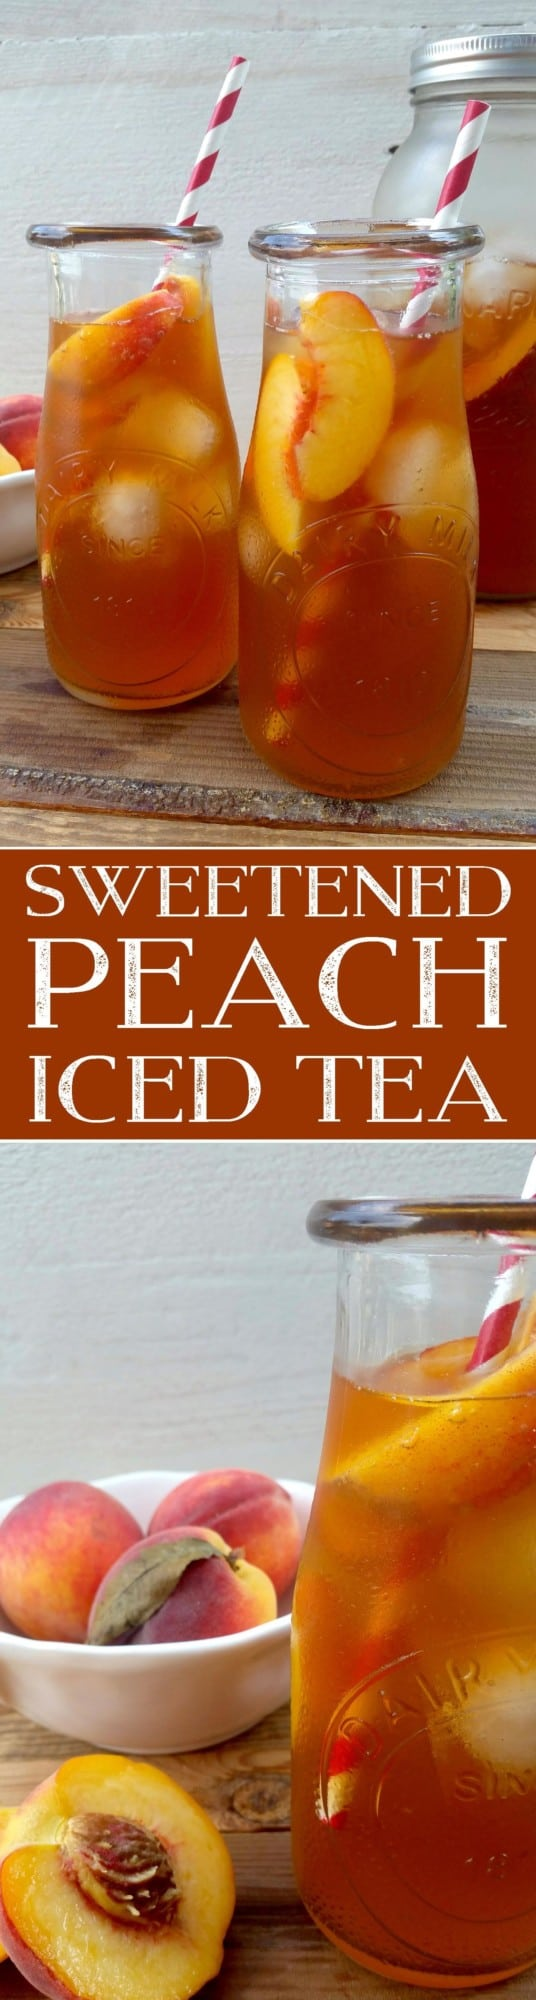 Sweetened Peach Iced Tea 2